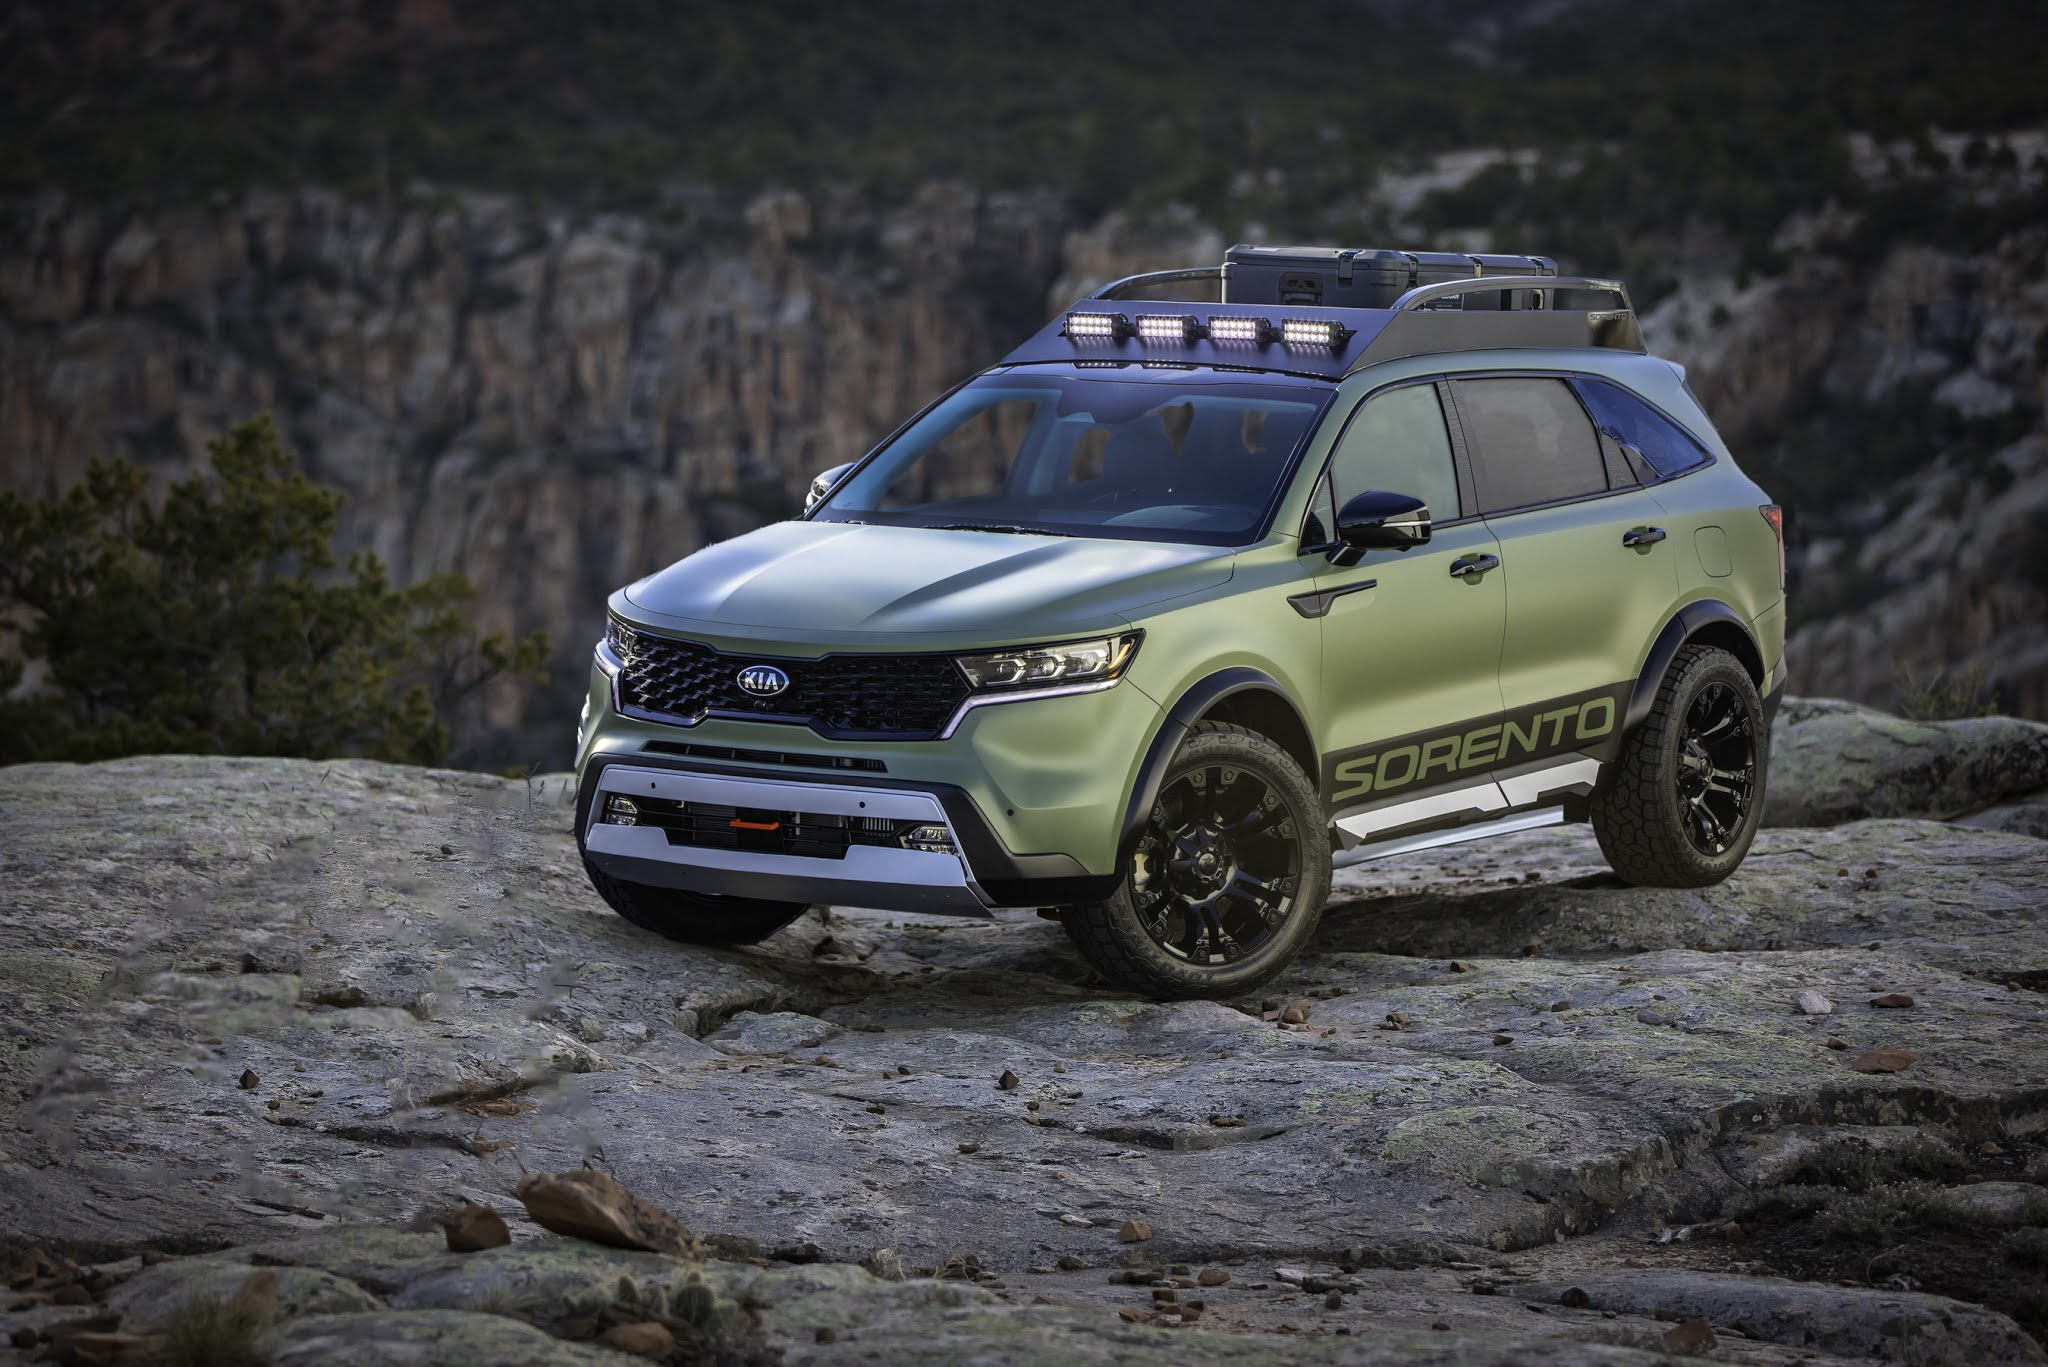 Kia Unveils Two Rugged X-Line Sorento Concepts Built For The Wild